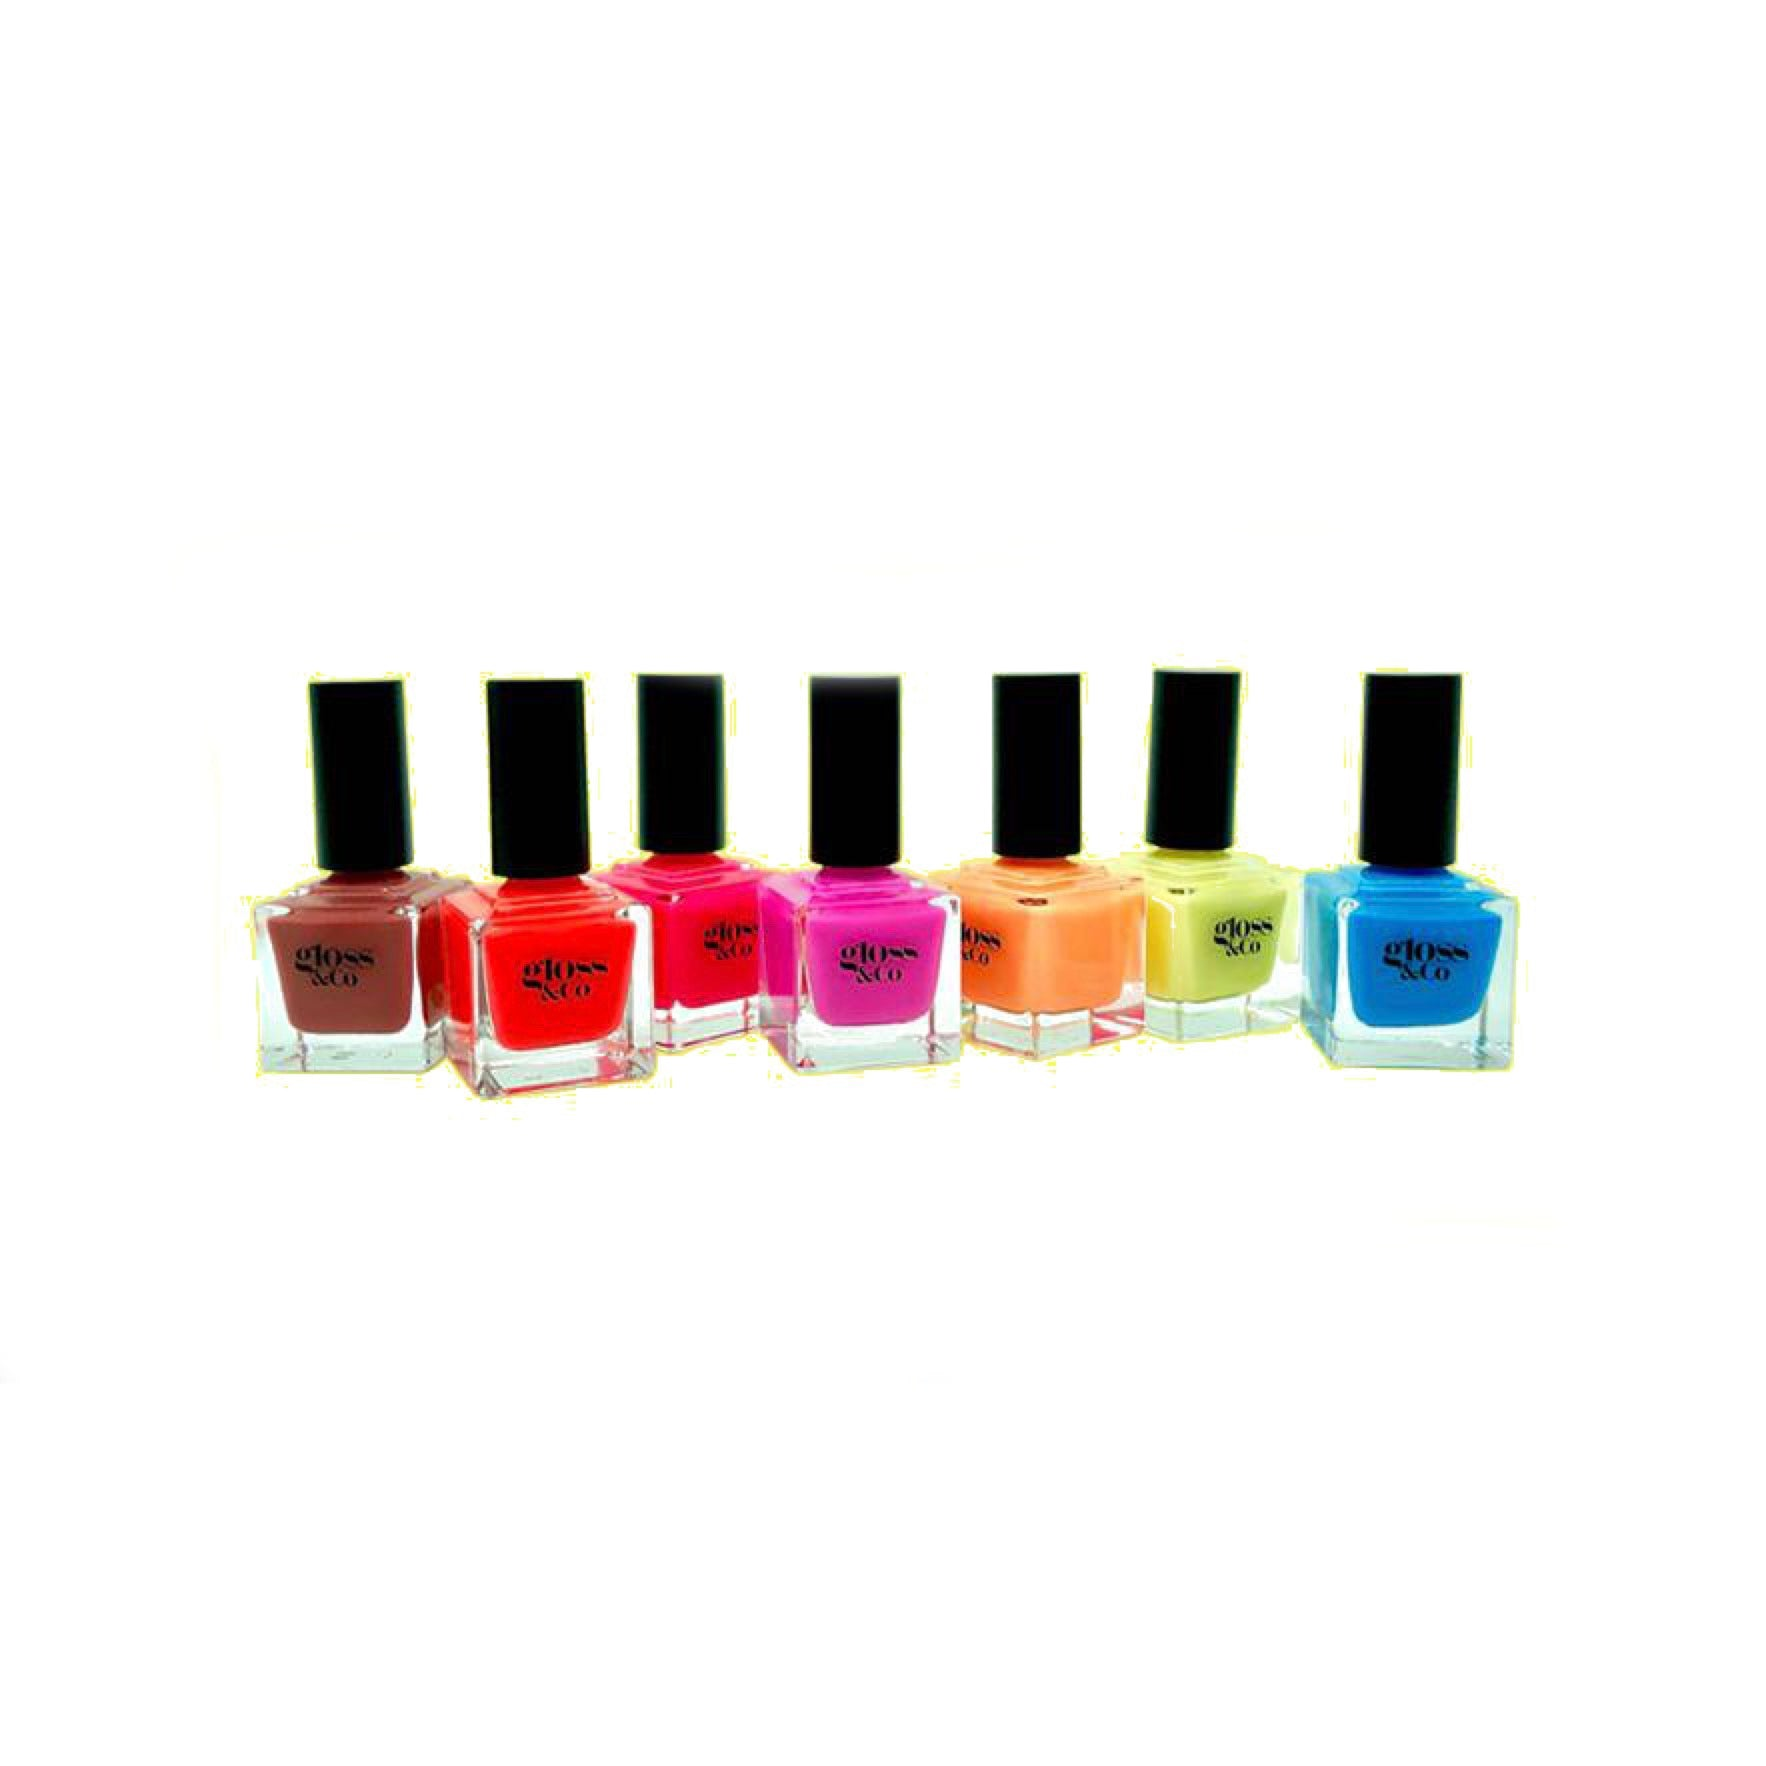 GLOSS & CO - Colour Nailpolishes, Base Coat, Top Coat